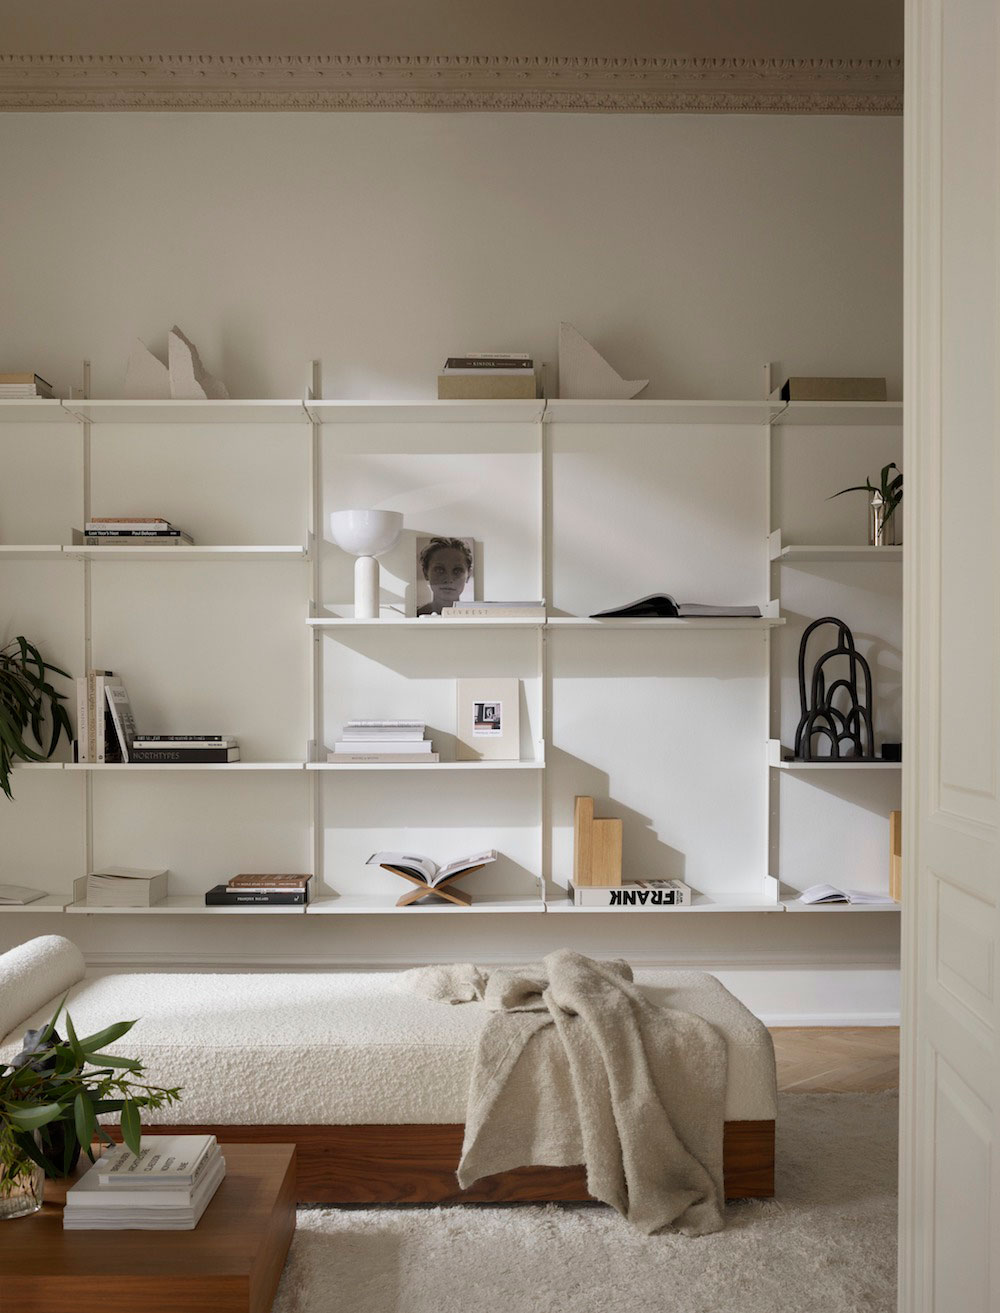 Choosing A White Paint Color: Quantity Of Light Is Key